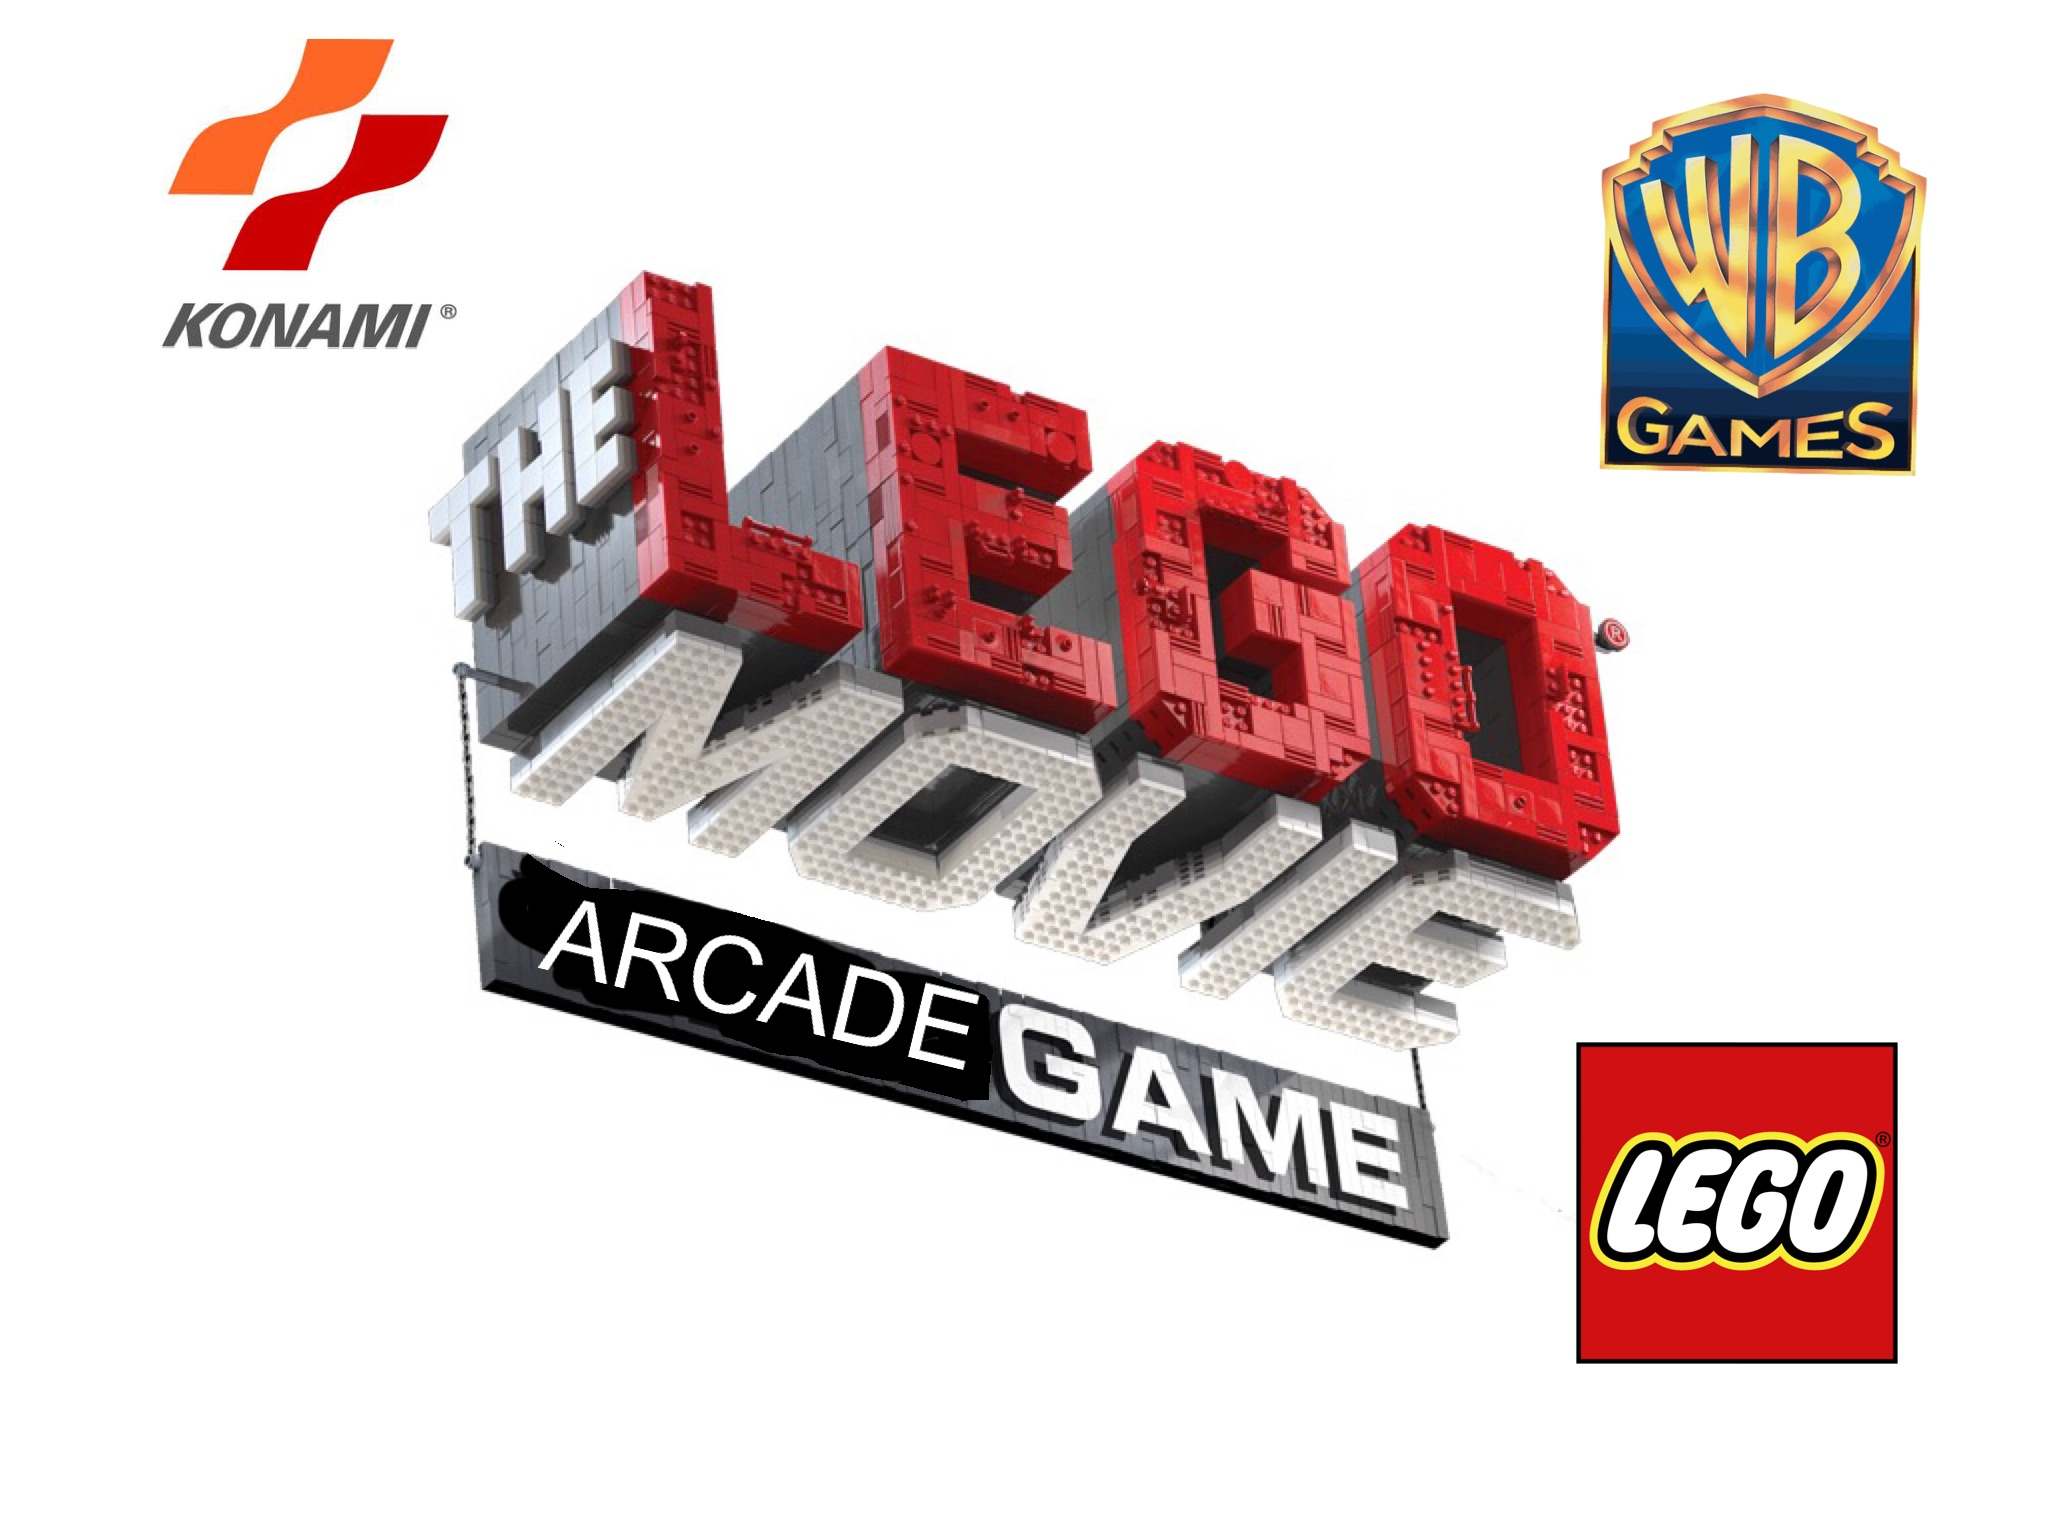 The LEGO Movie Arcade Game